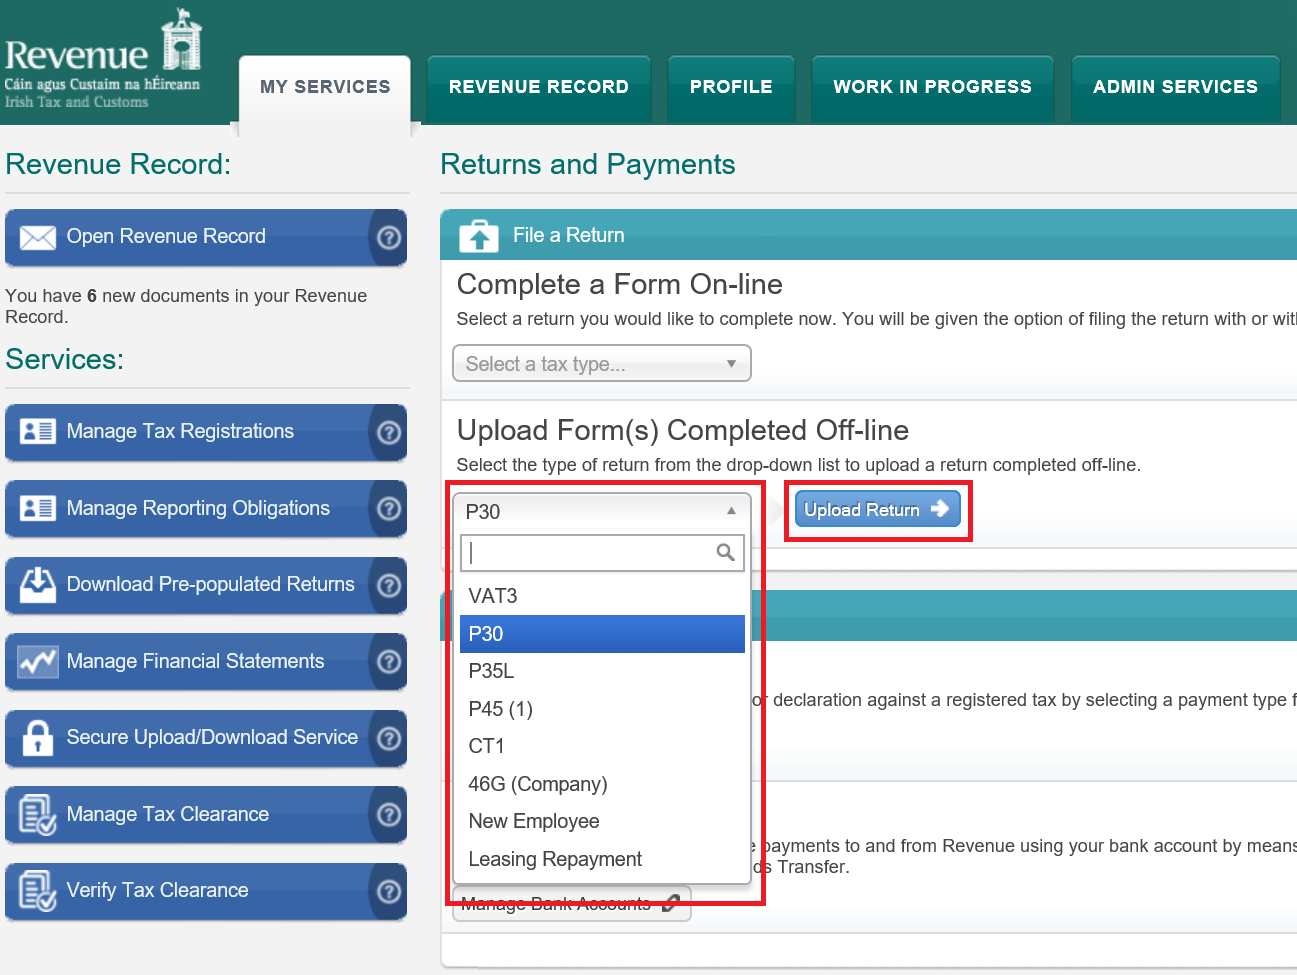 Collsoft payroll support helpdesk p30 submitting via ros.